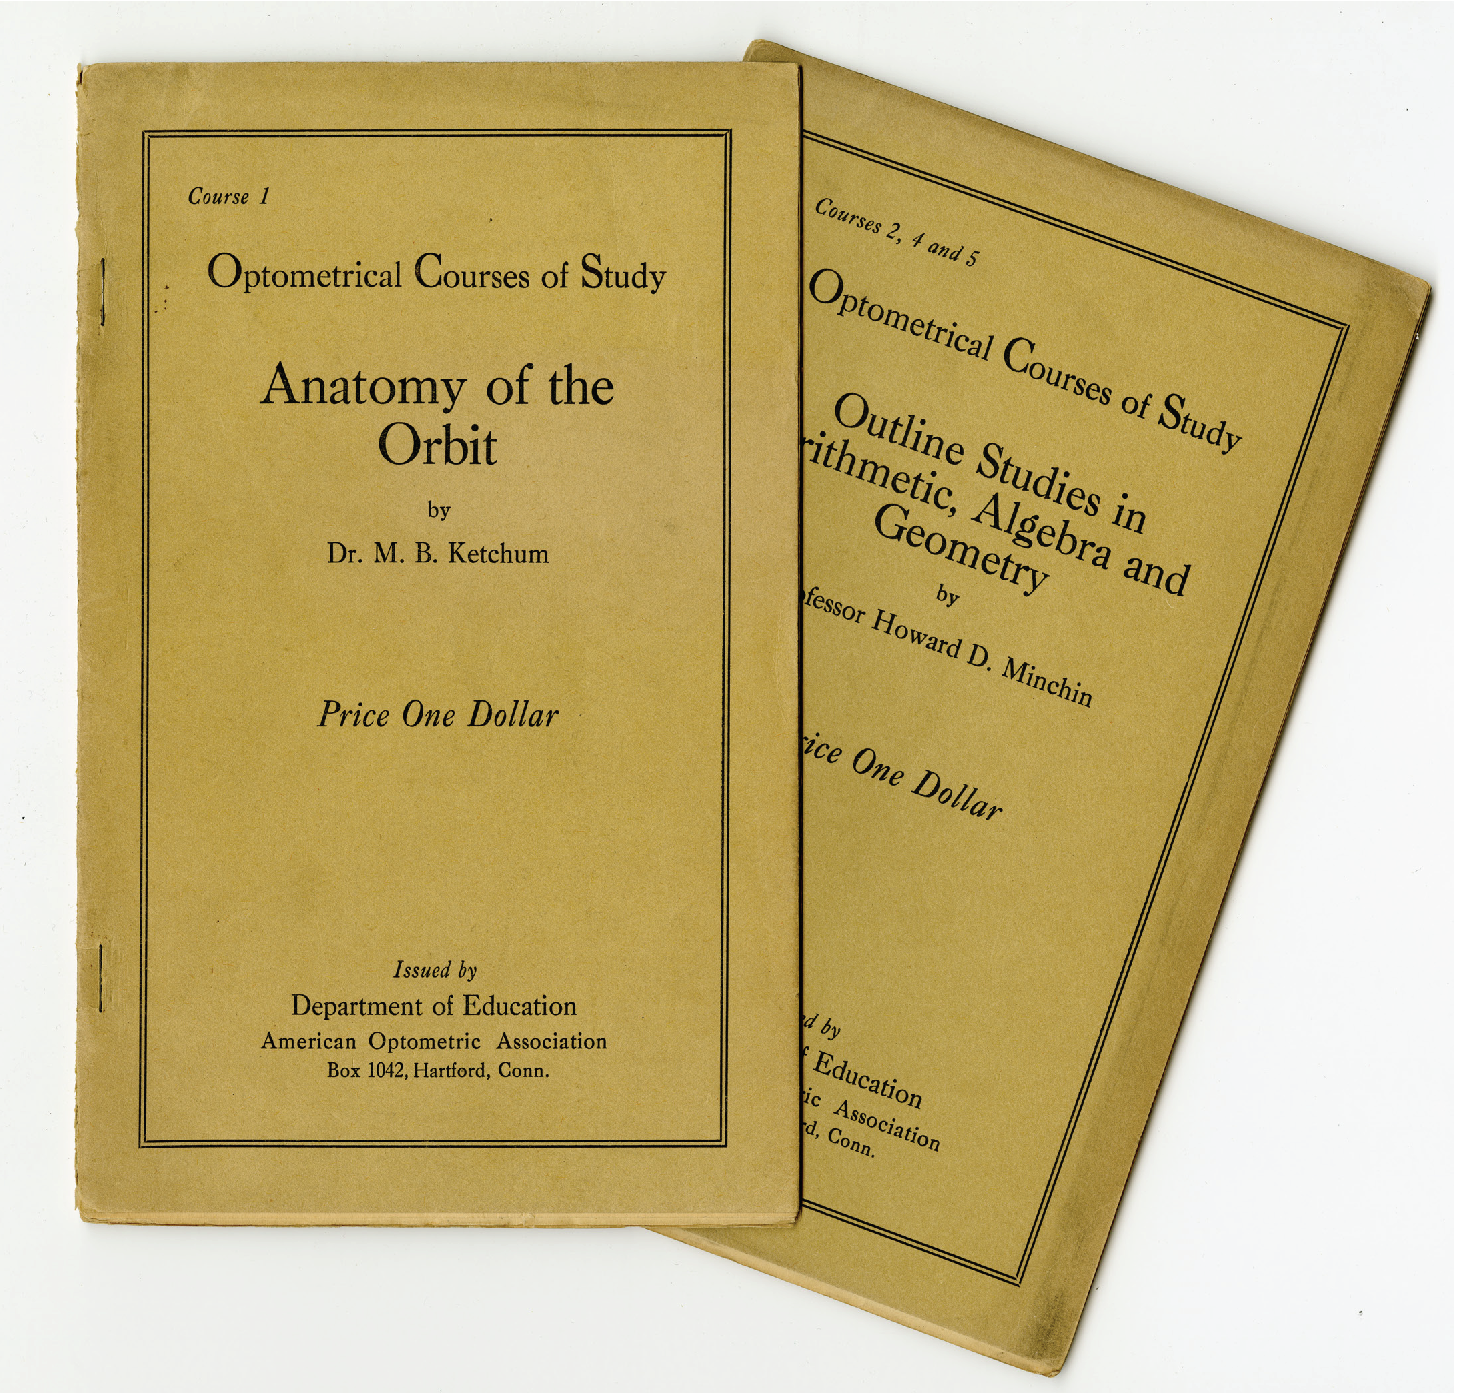 Picture of two AOA correspondence course booklets from 1919: Course 1: Anatomy of the Orbit by Dr. M.B. Ketchum and Courses 2, 4 and 5: Outline Stides in Arithmetic, Algebra and Geometry by Professor Howard D. Minchin